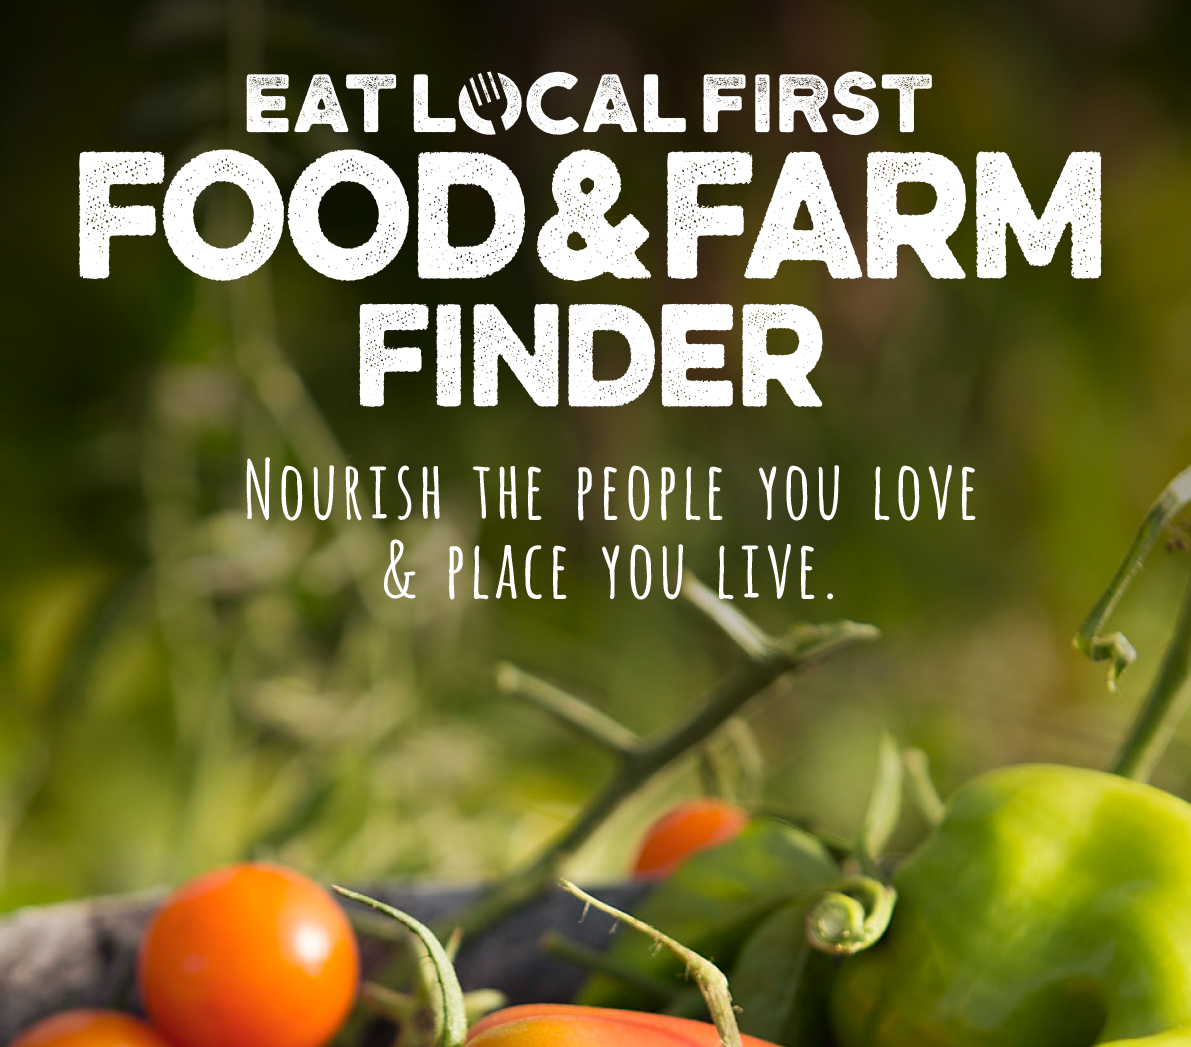 ELF Food & Farm Finder